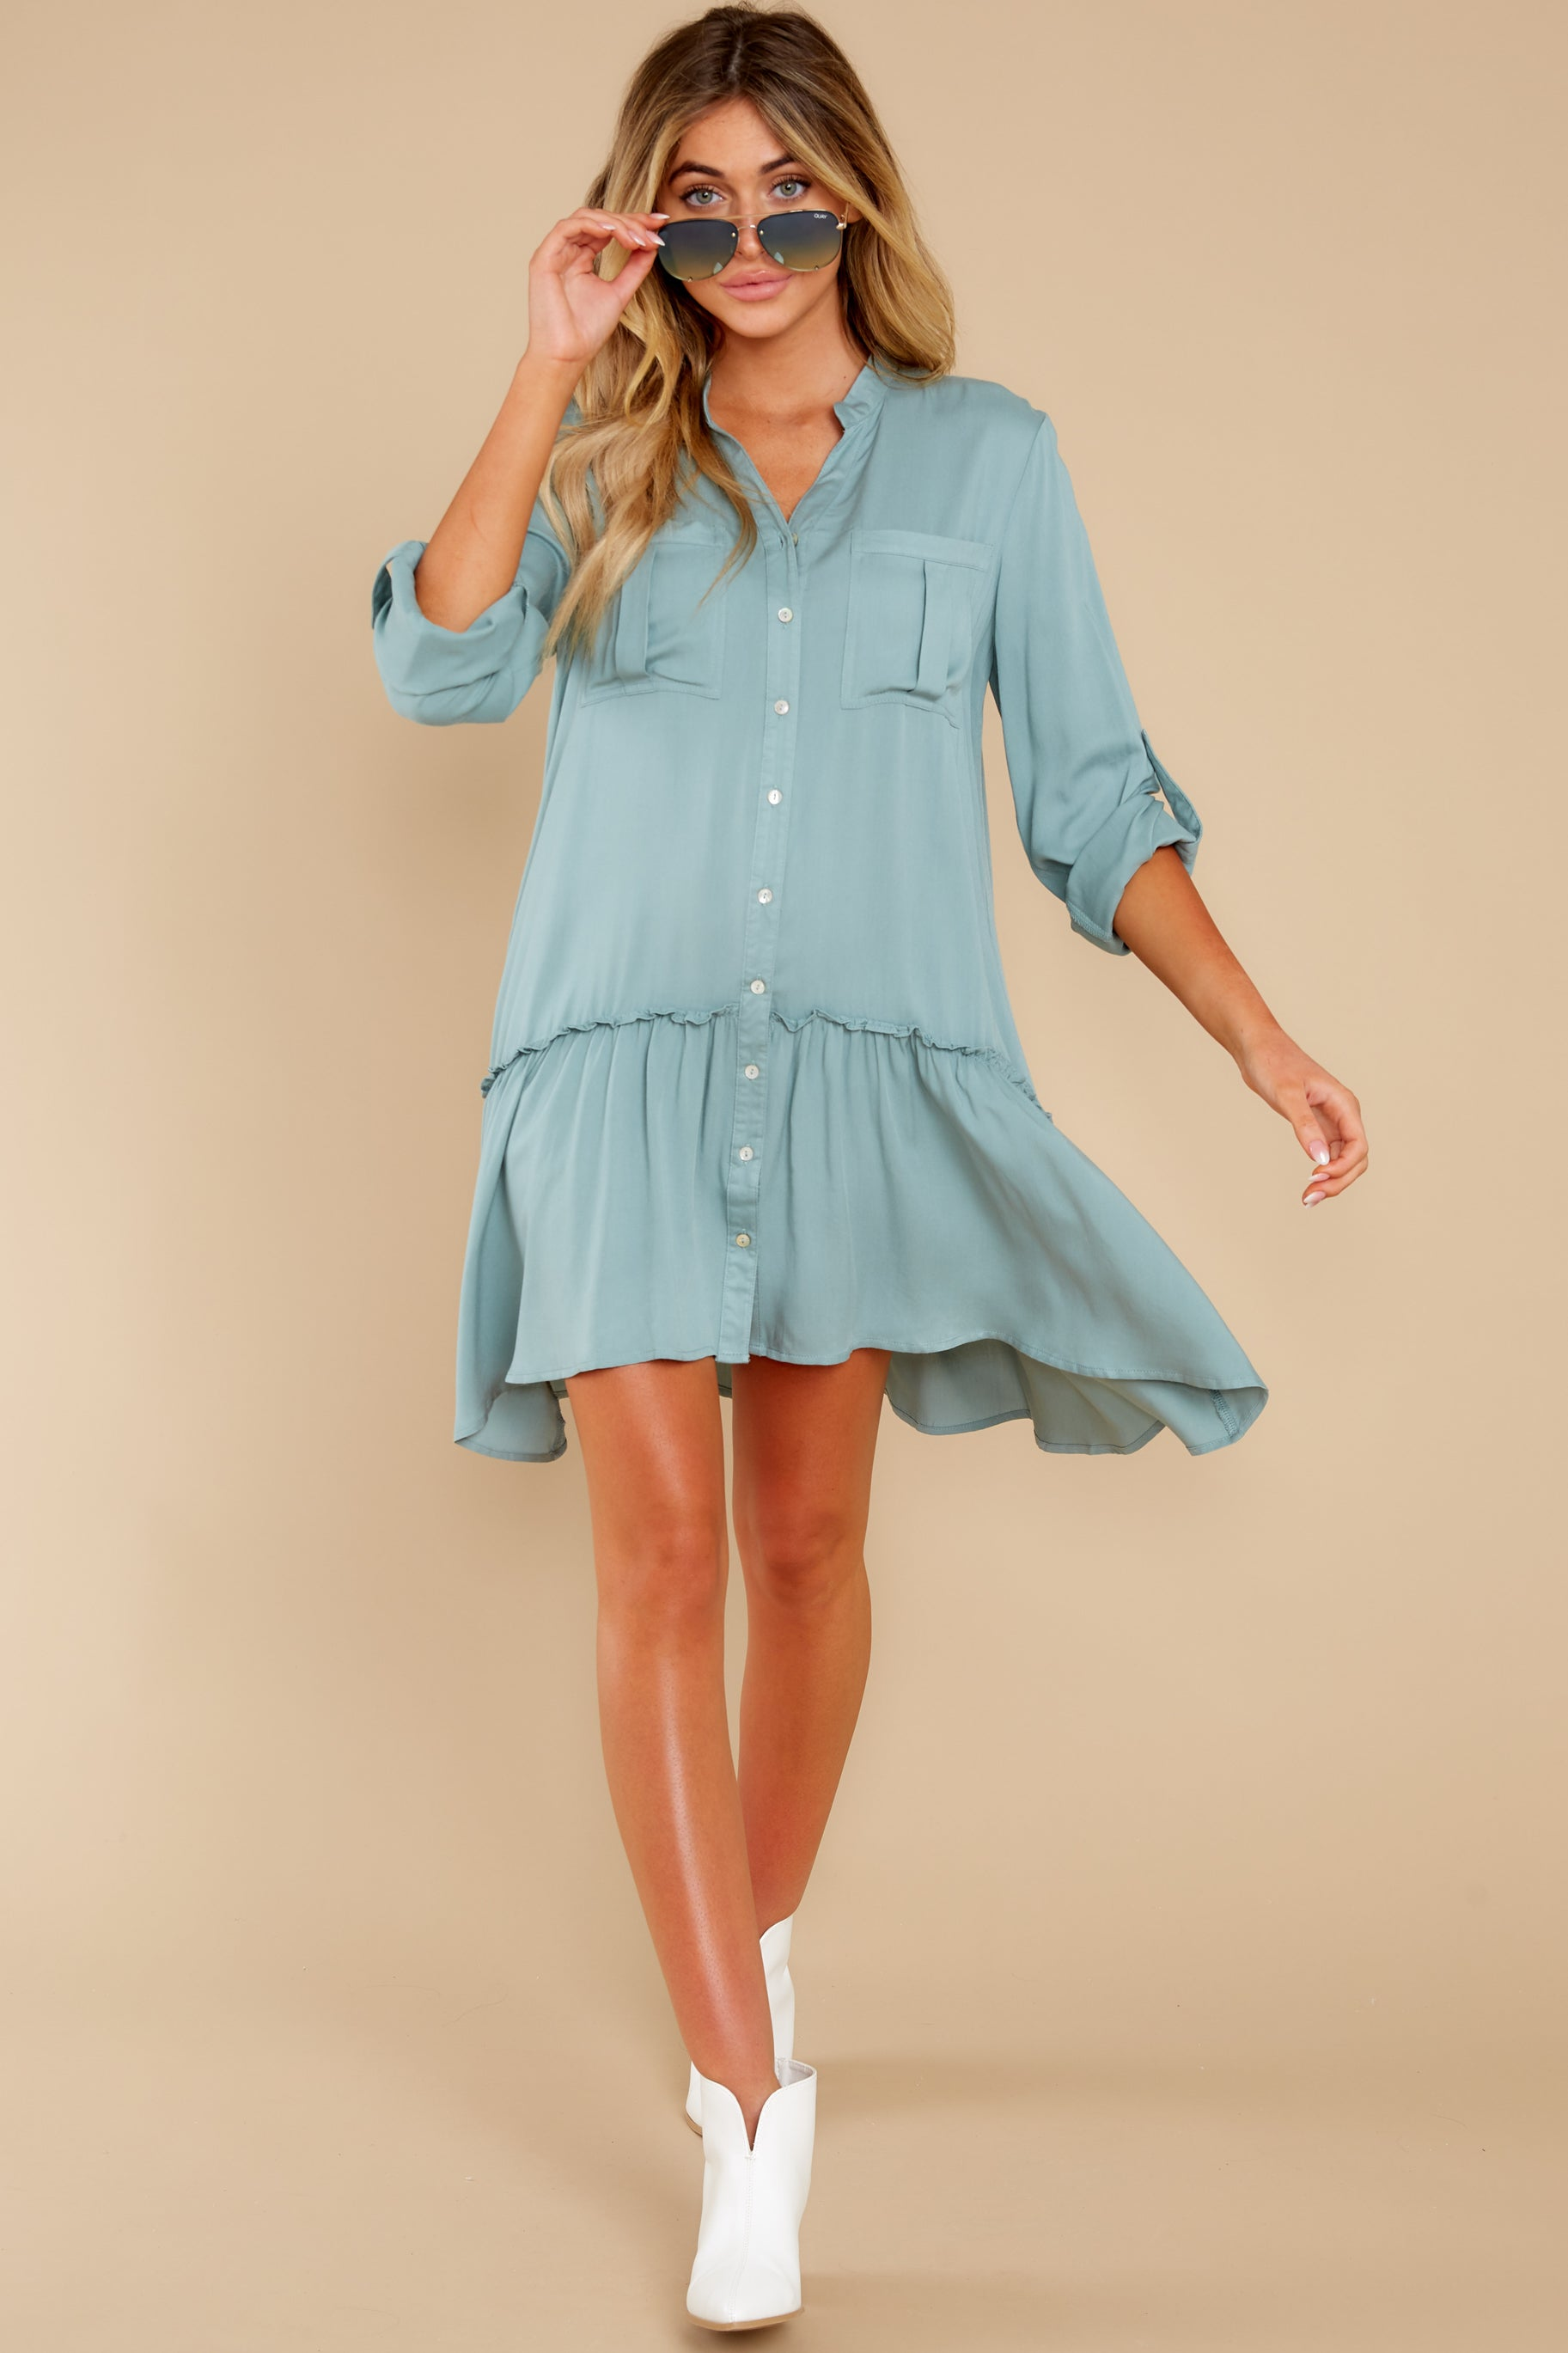 3 Stick By You Blue Haze Dress at redress.com